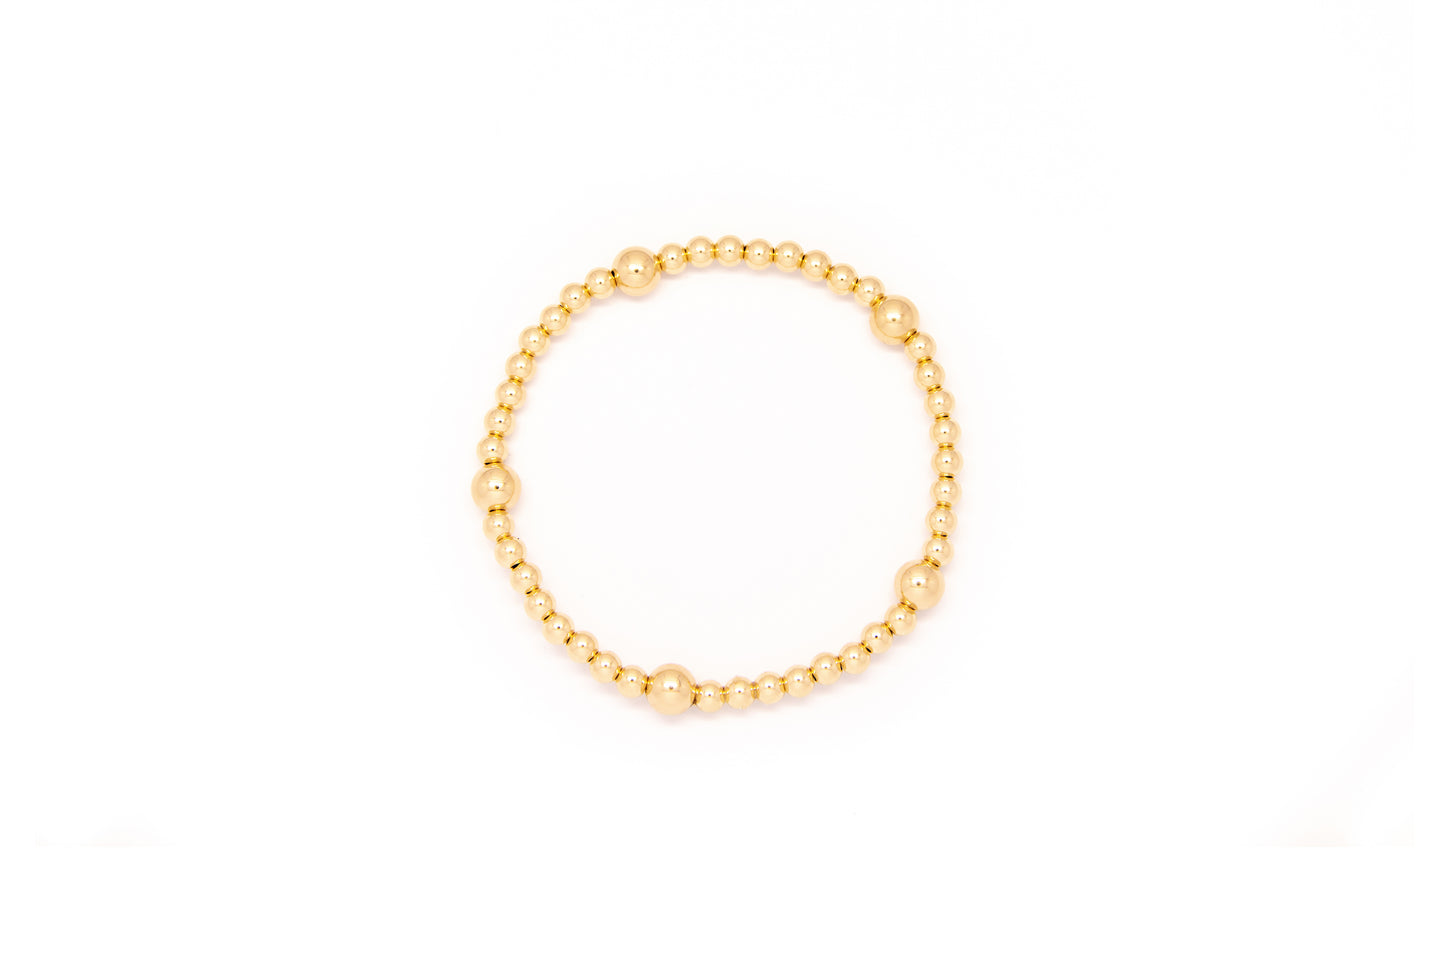 Small Gold Bracelet w/ 5 Ball Stations